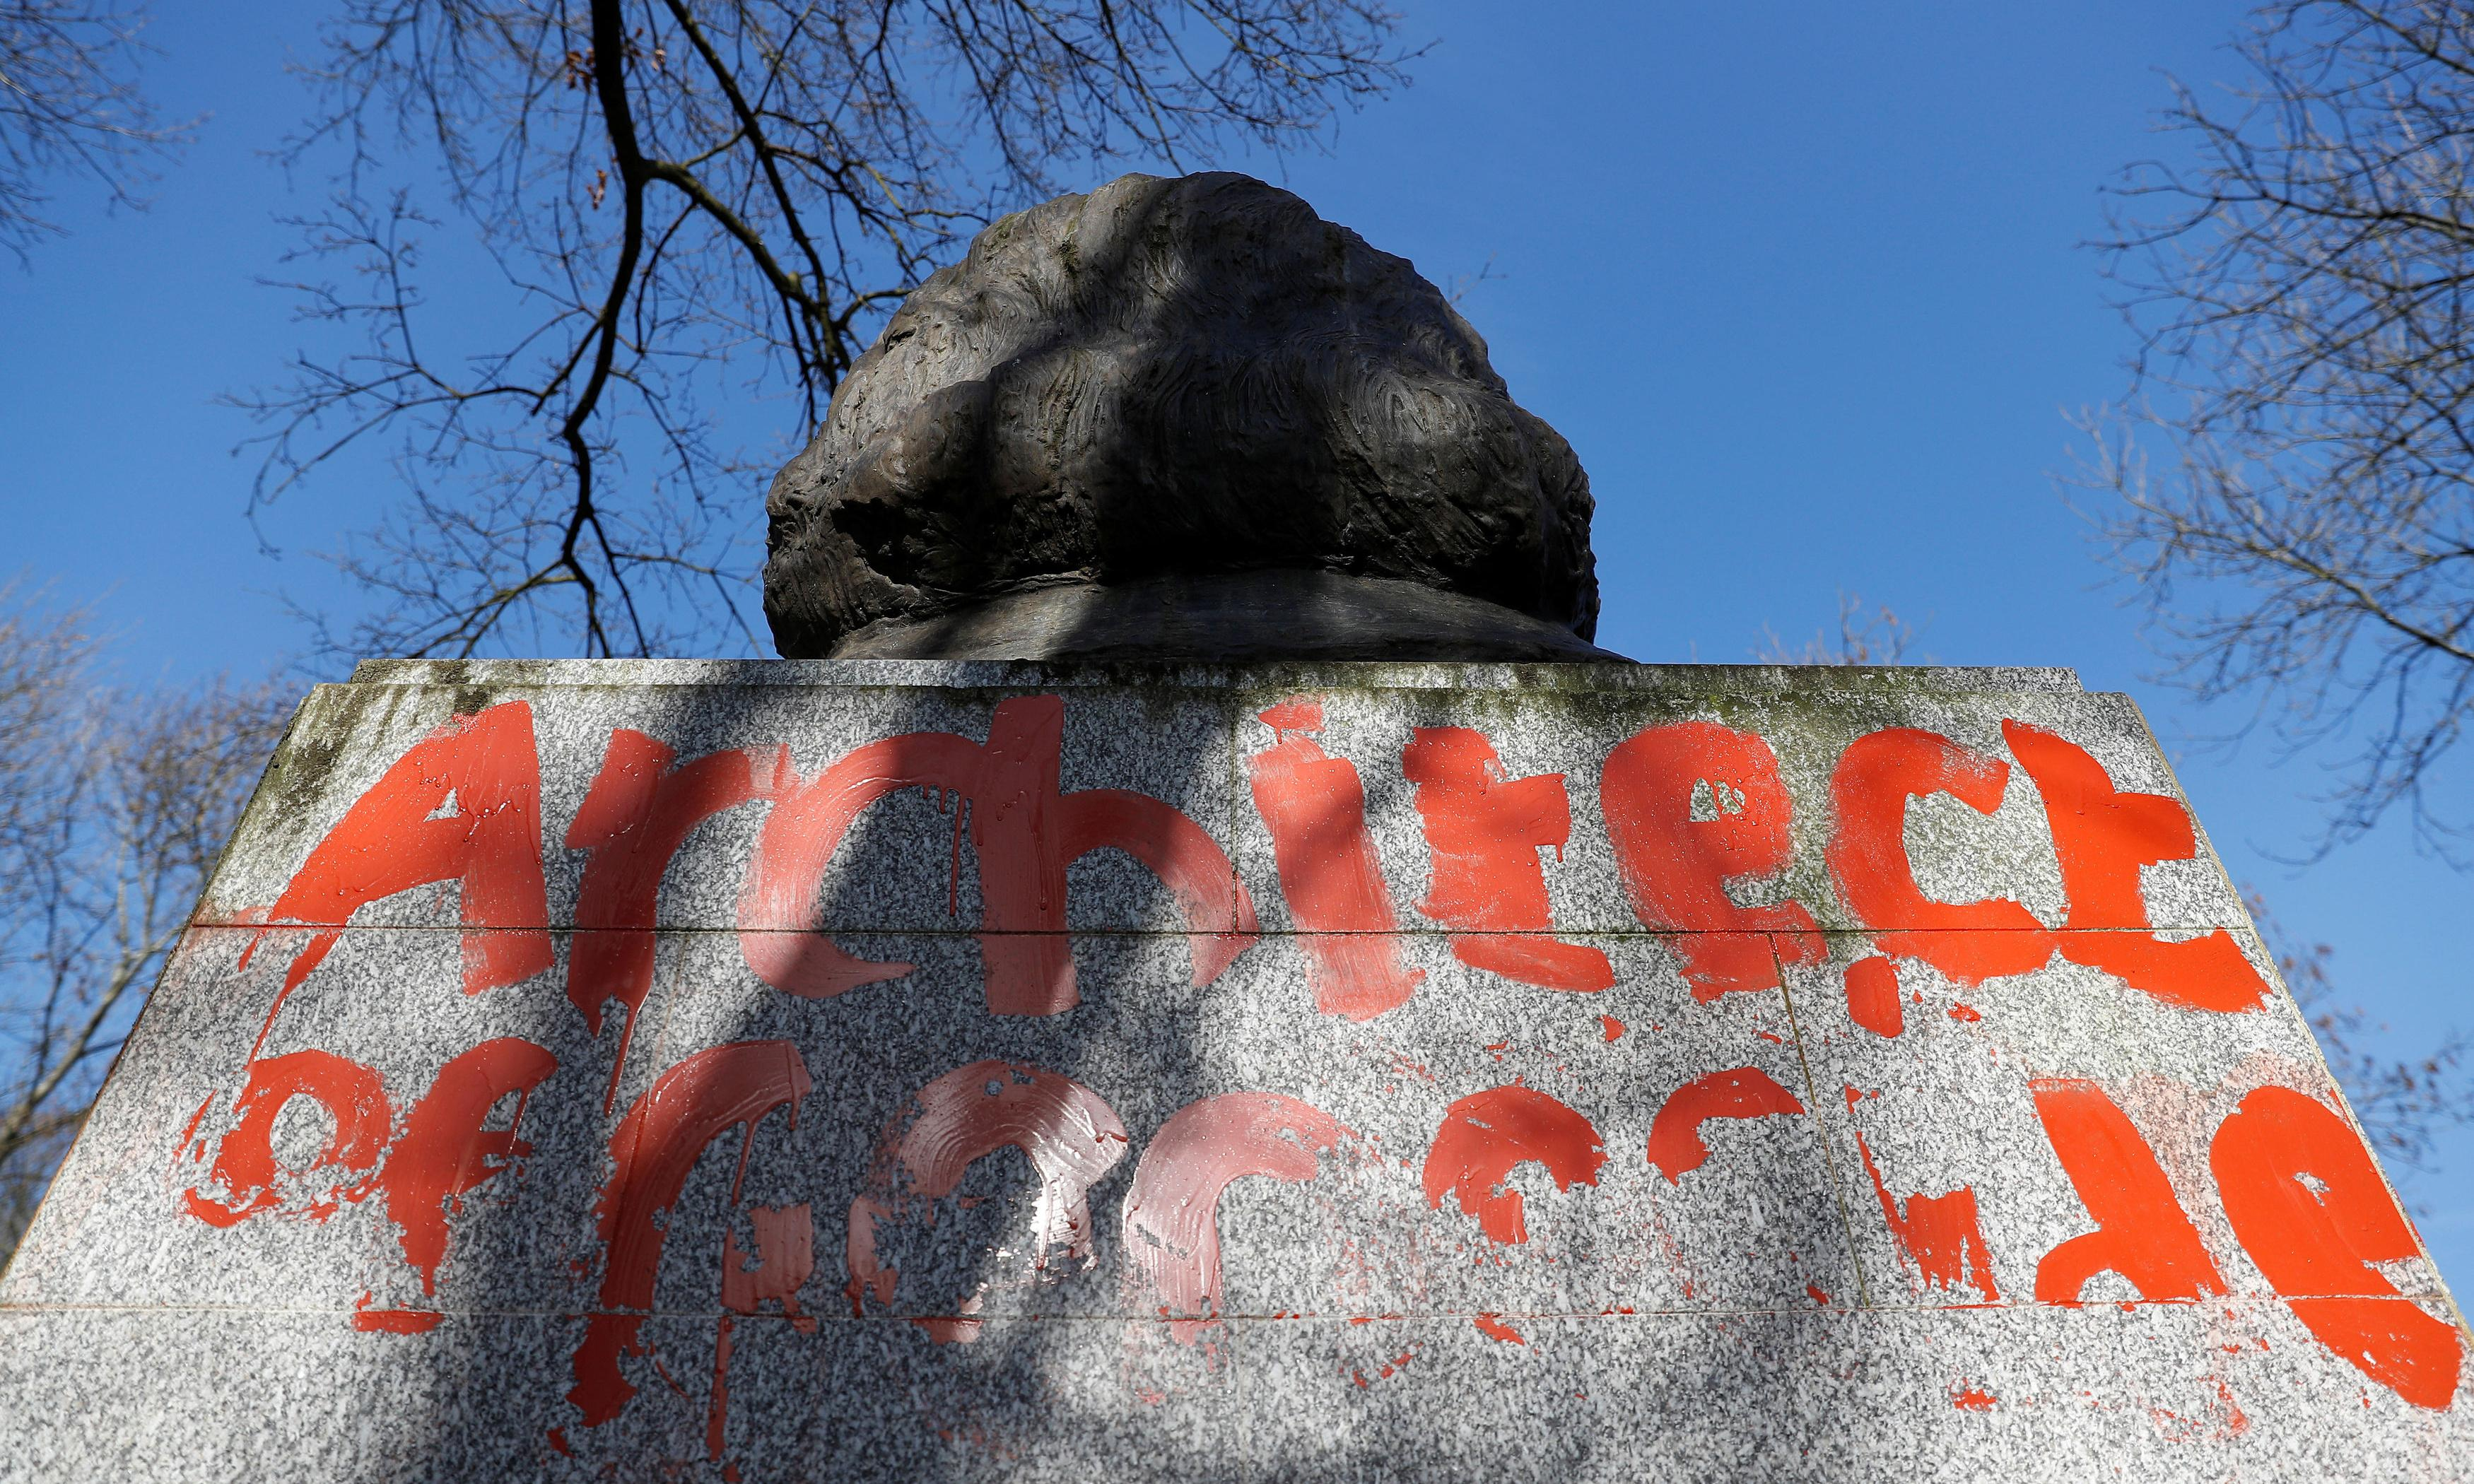 They can deface Marx's grave – but they'll never erase his ideas